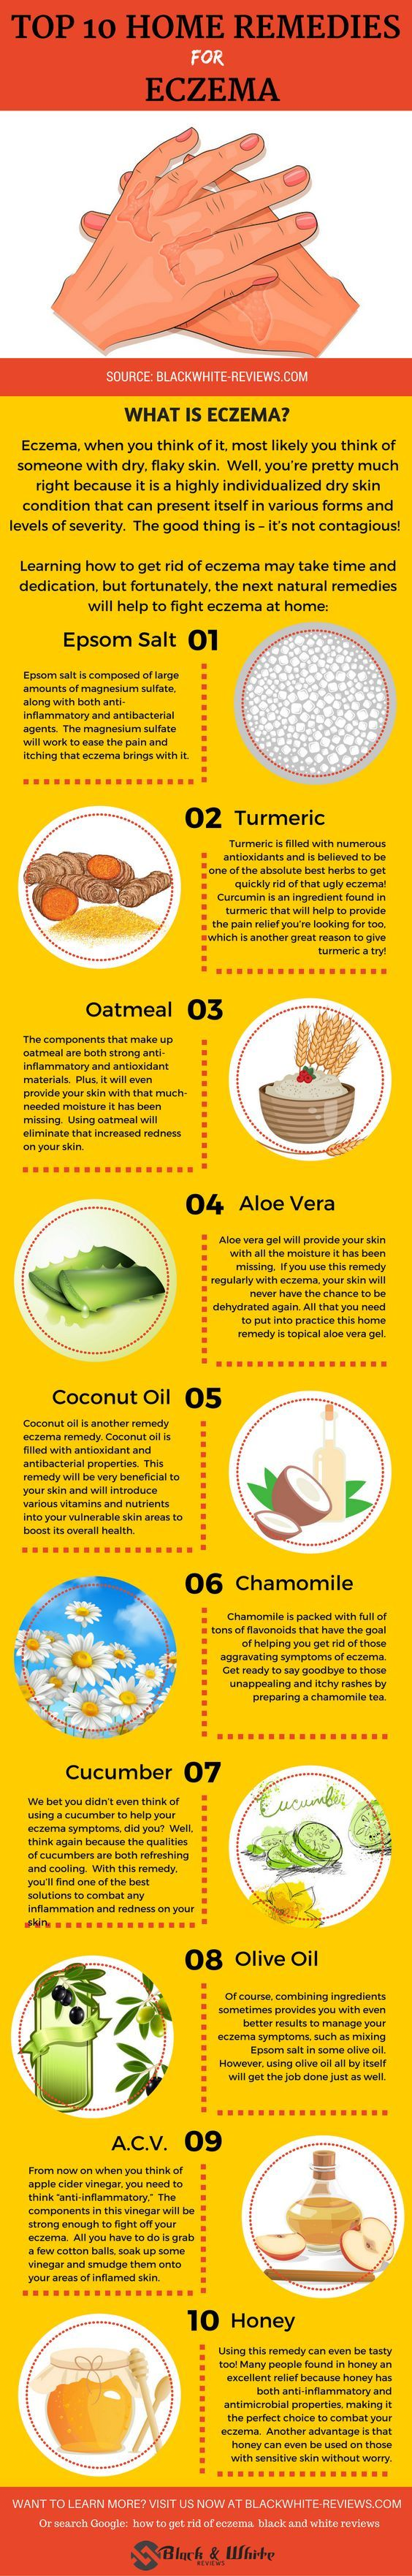 Home Remedies For Everyday Use